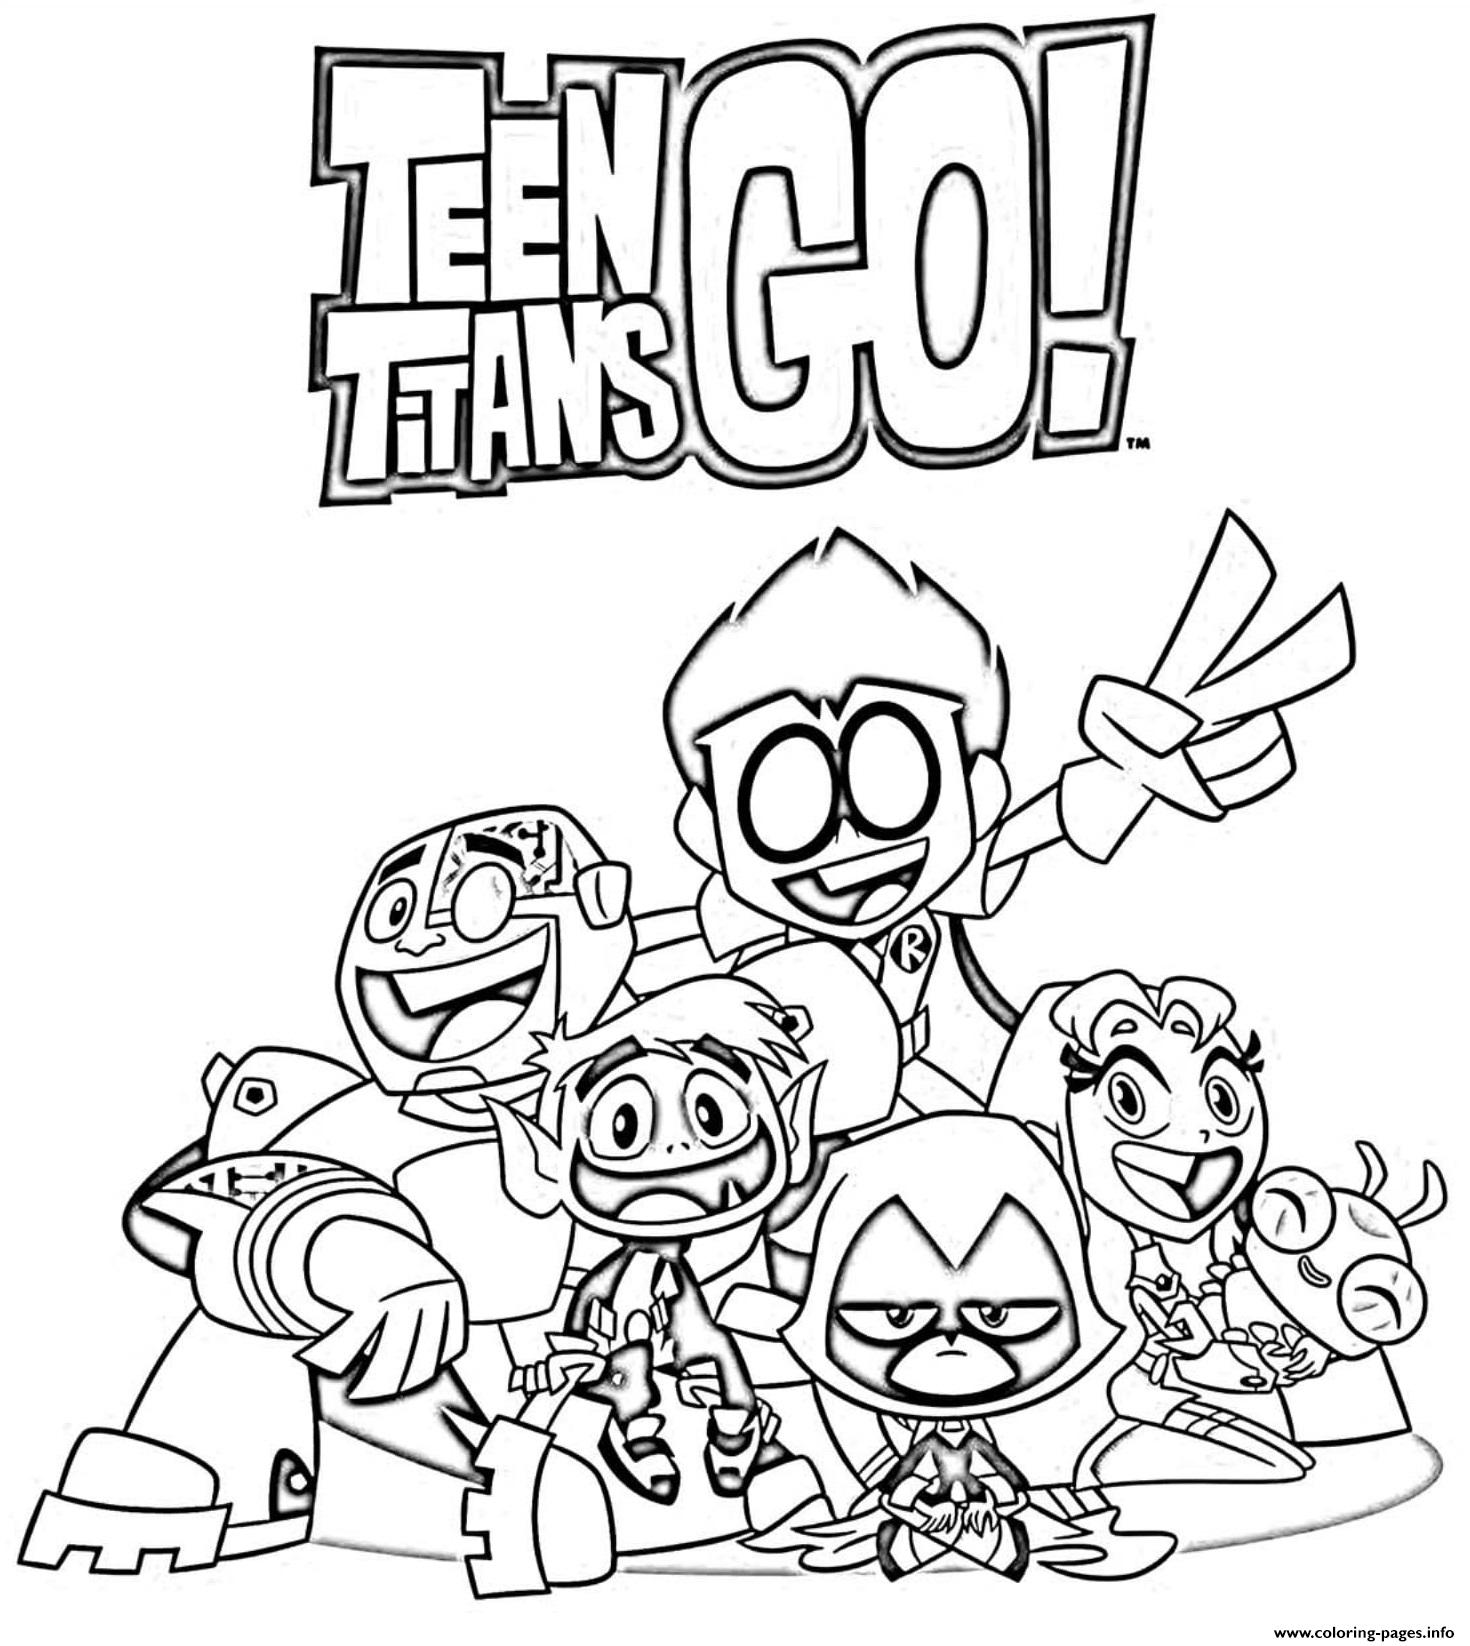 Printable Teen Titans Starfire 3 Coloring Page Sketch ...